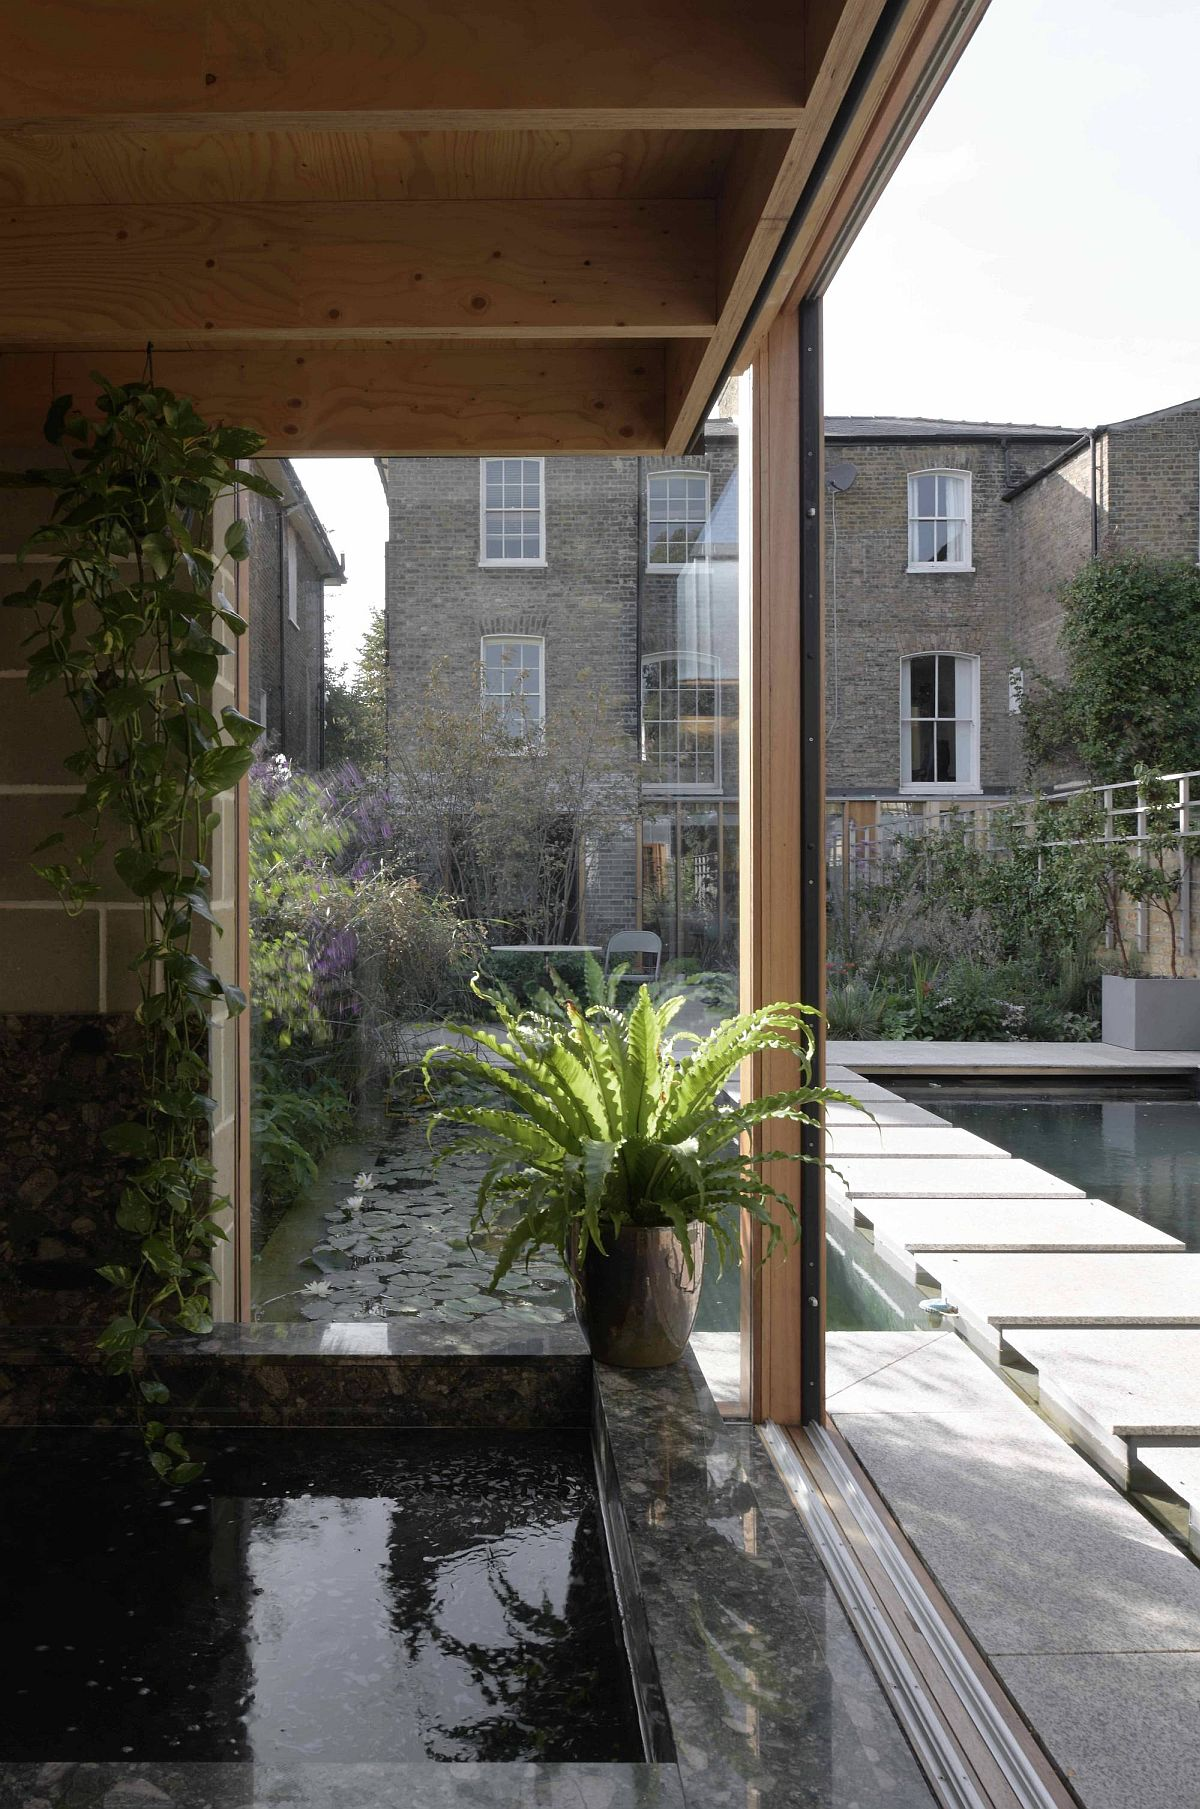 Water features and greenery become a natural part of the lovely garden room